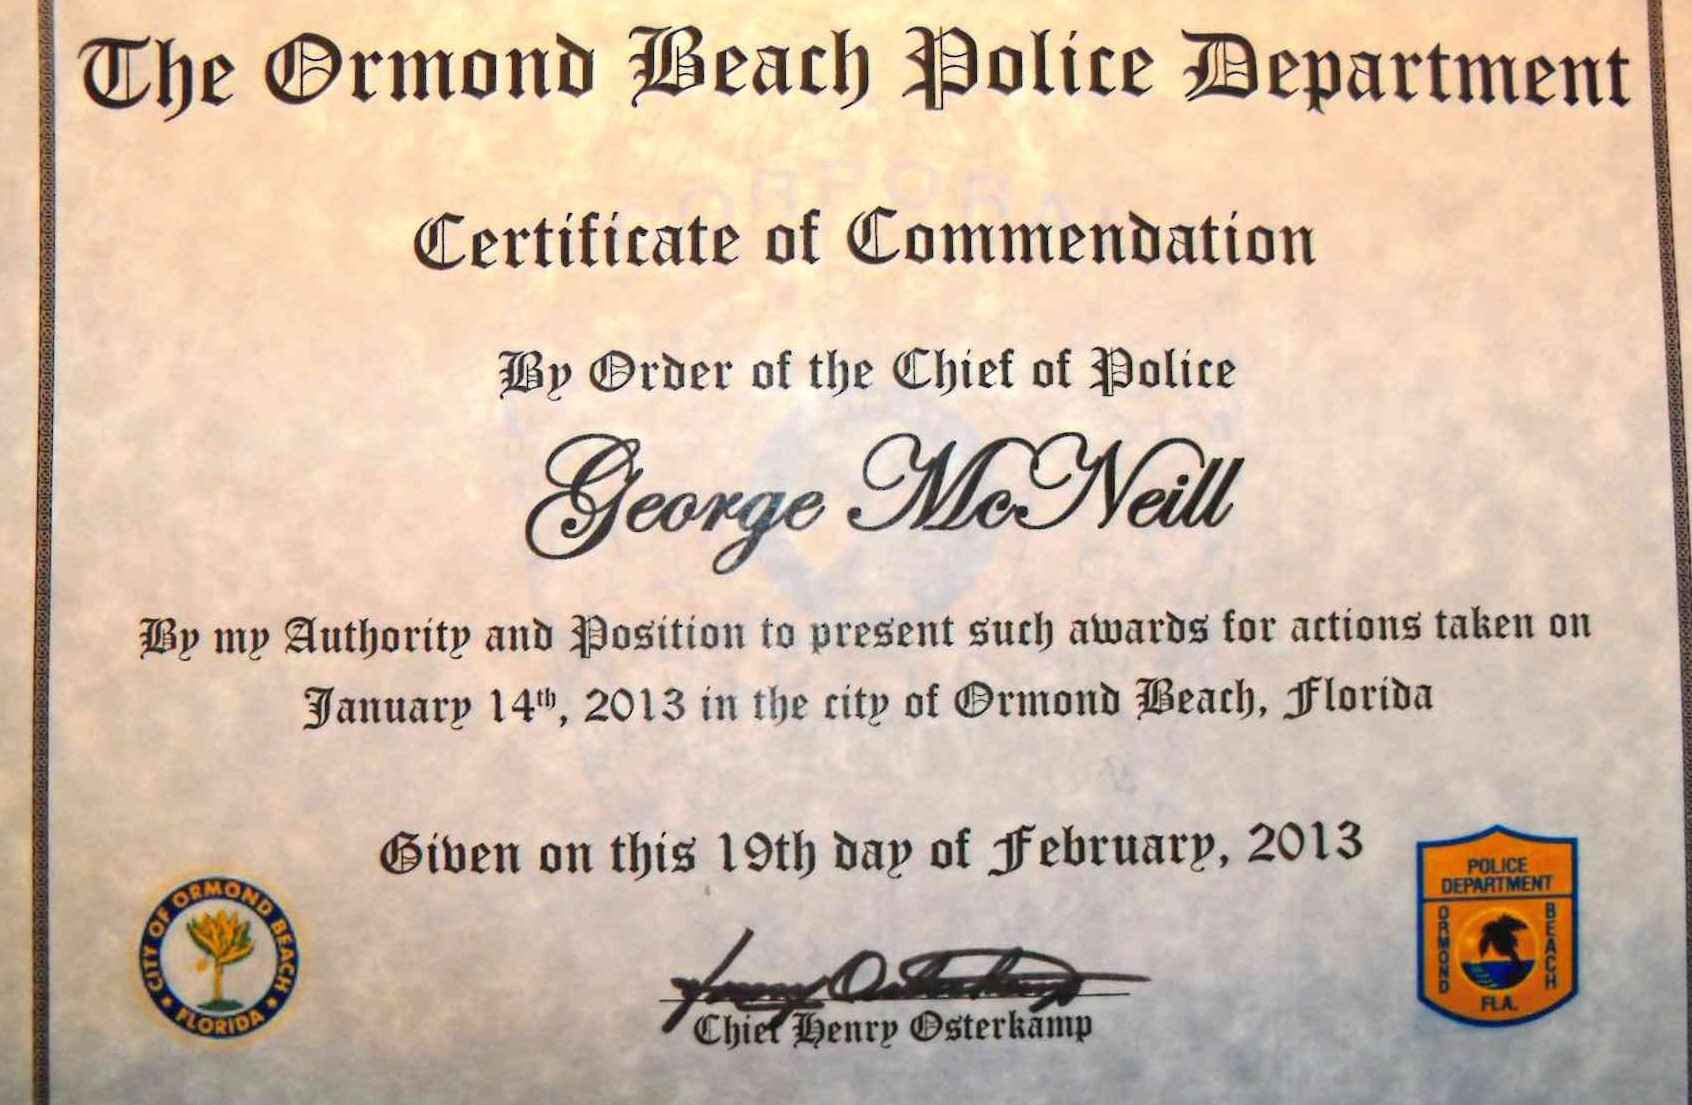 Certificate of Commendation Ormond Beach Police Department